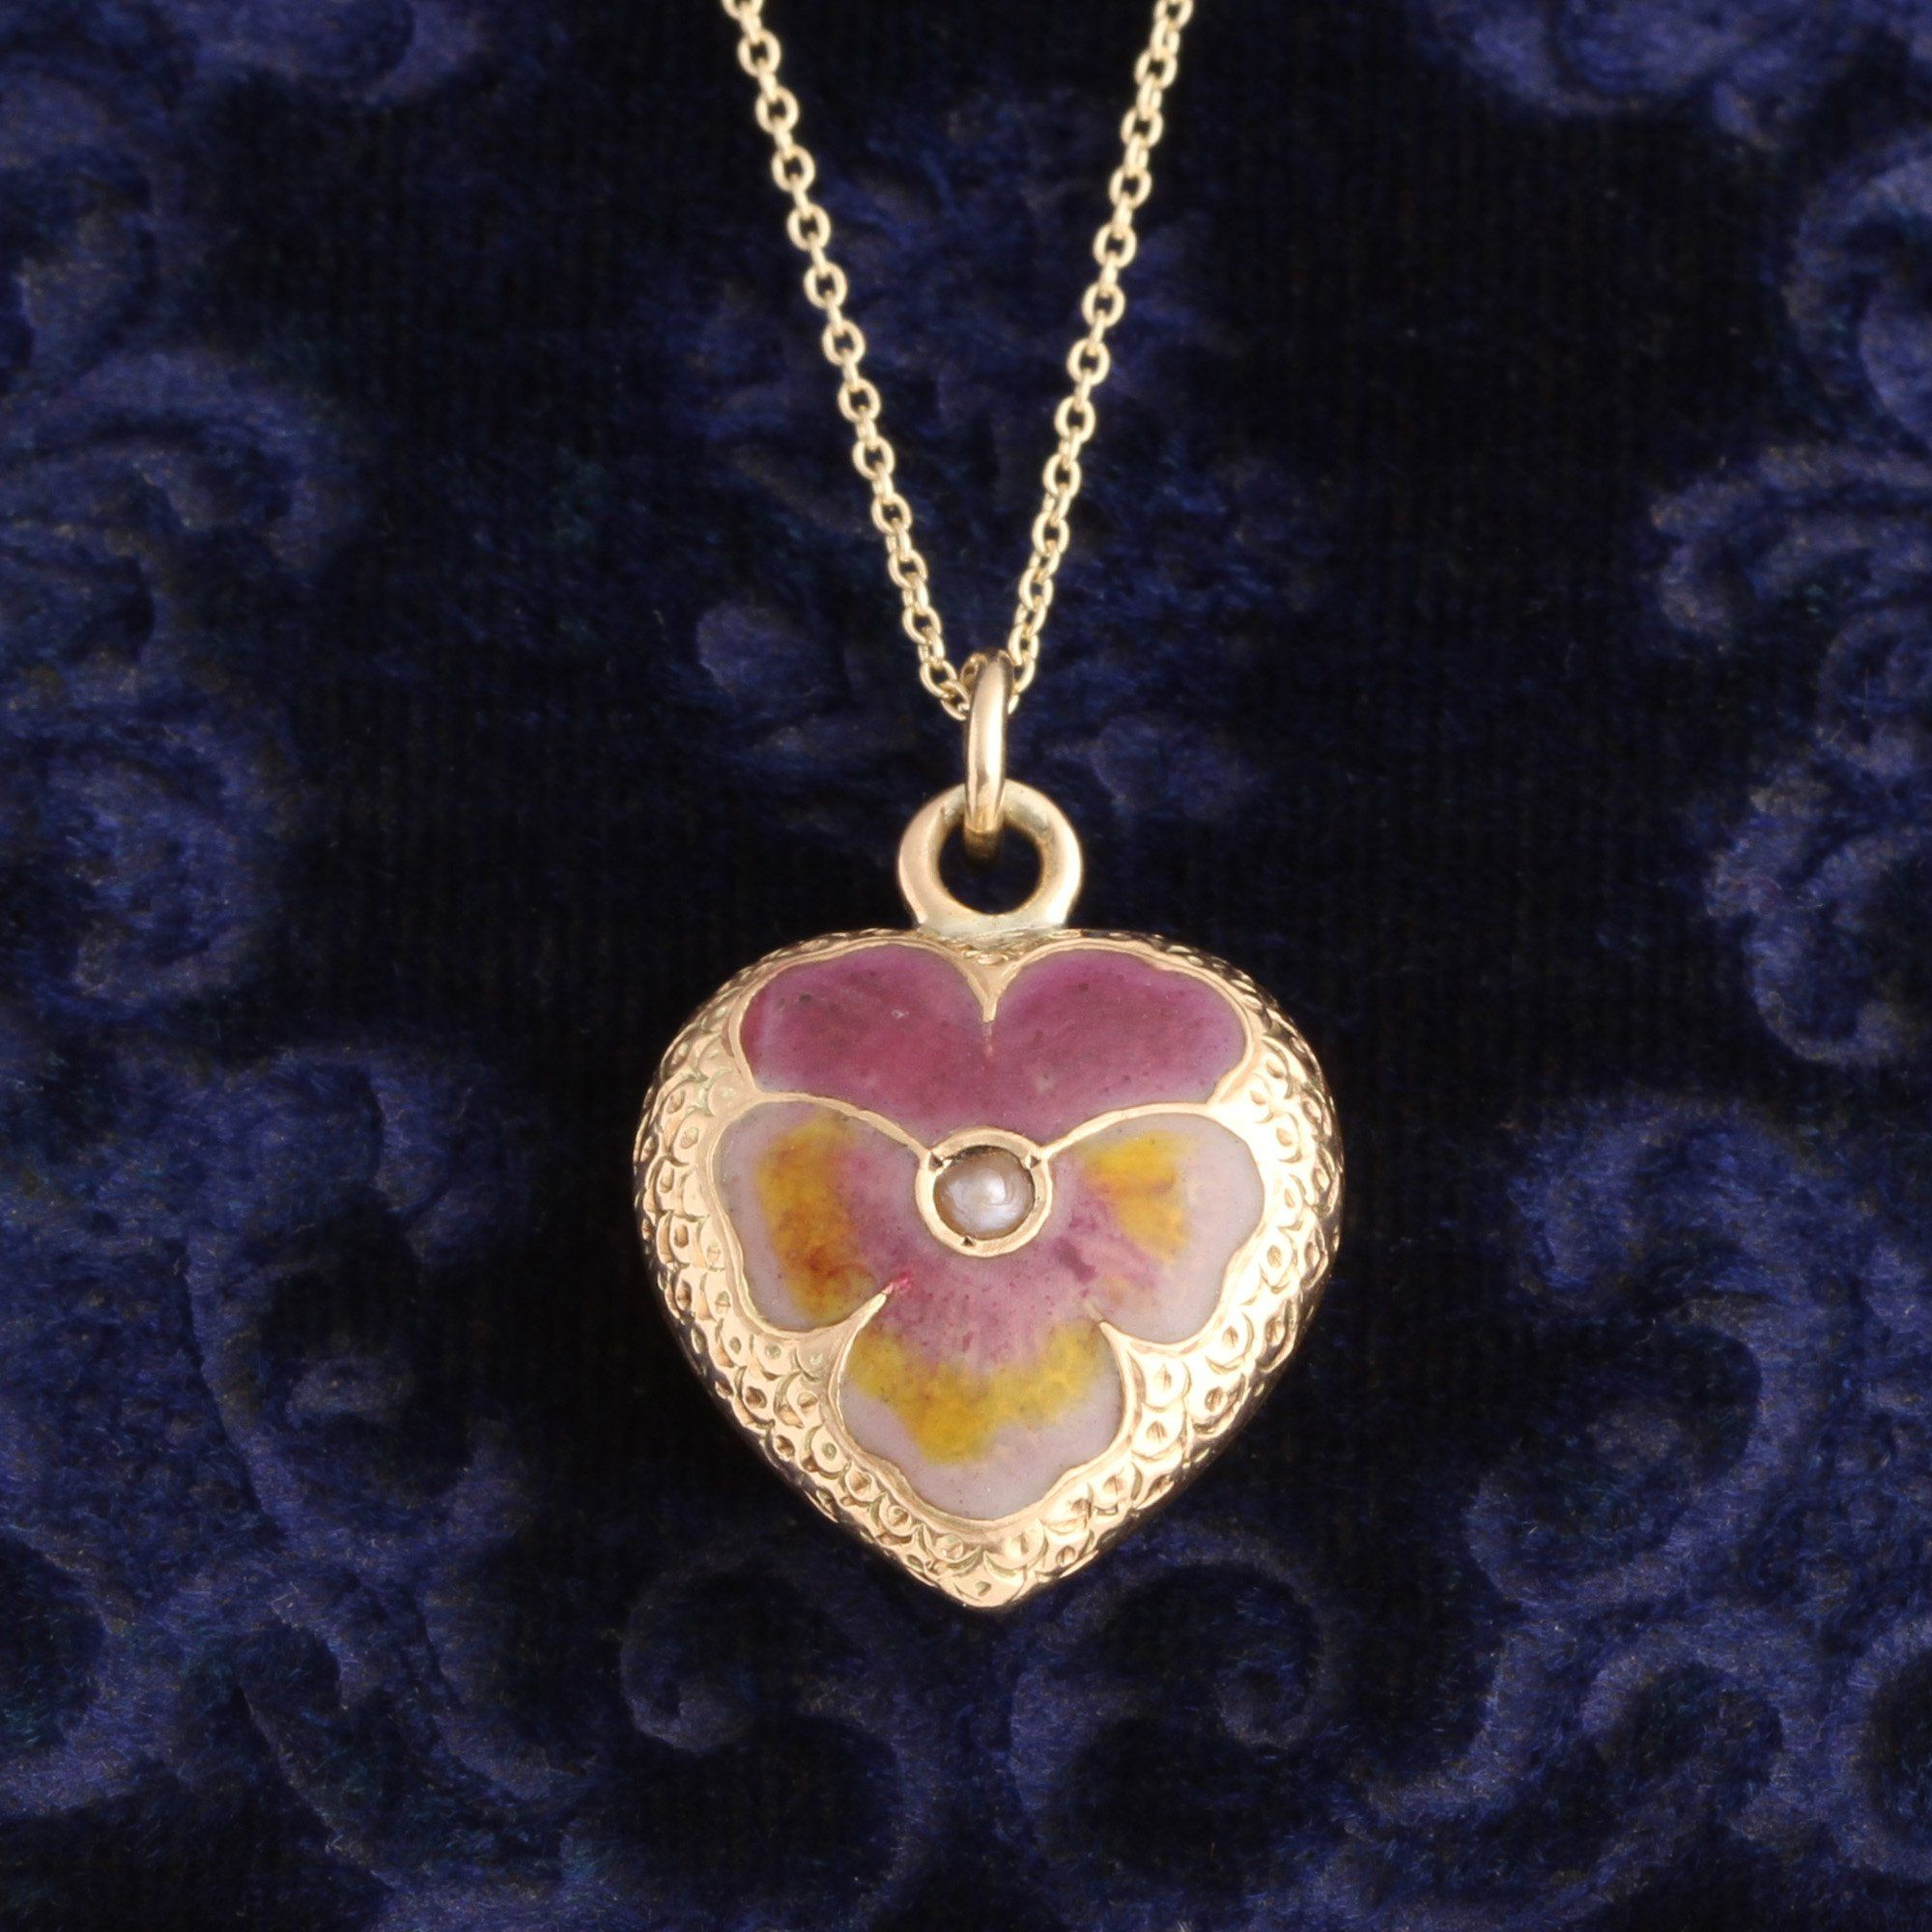 Victorian Enamel Pansy Heart Necklace